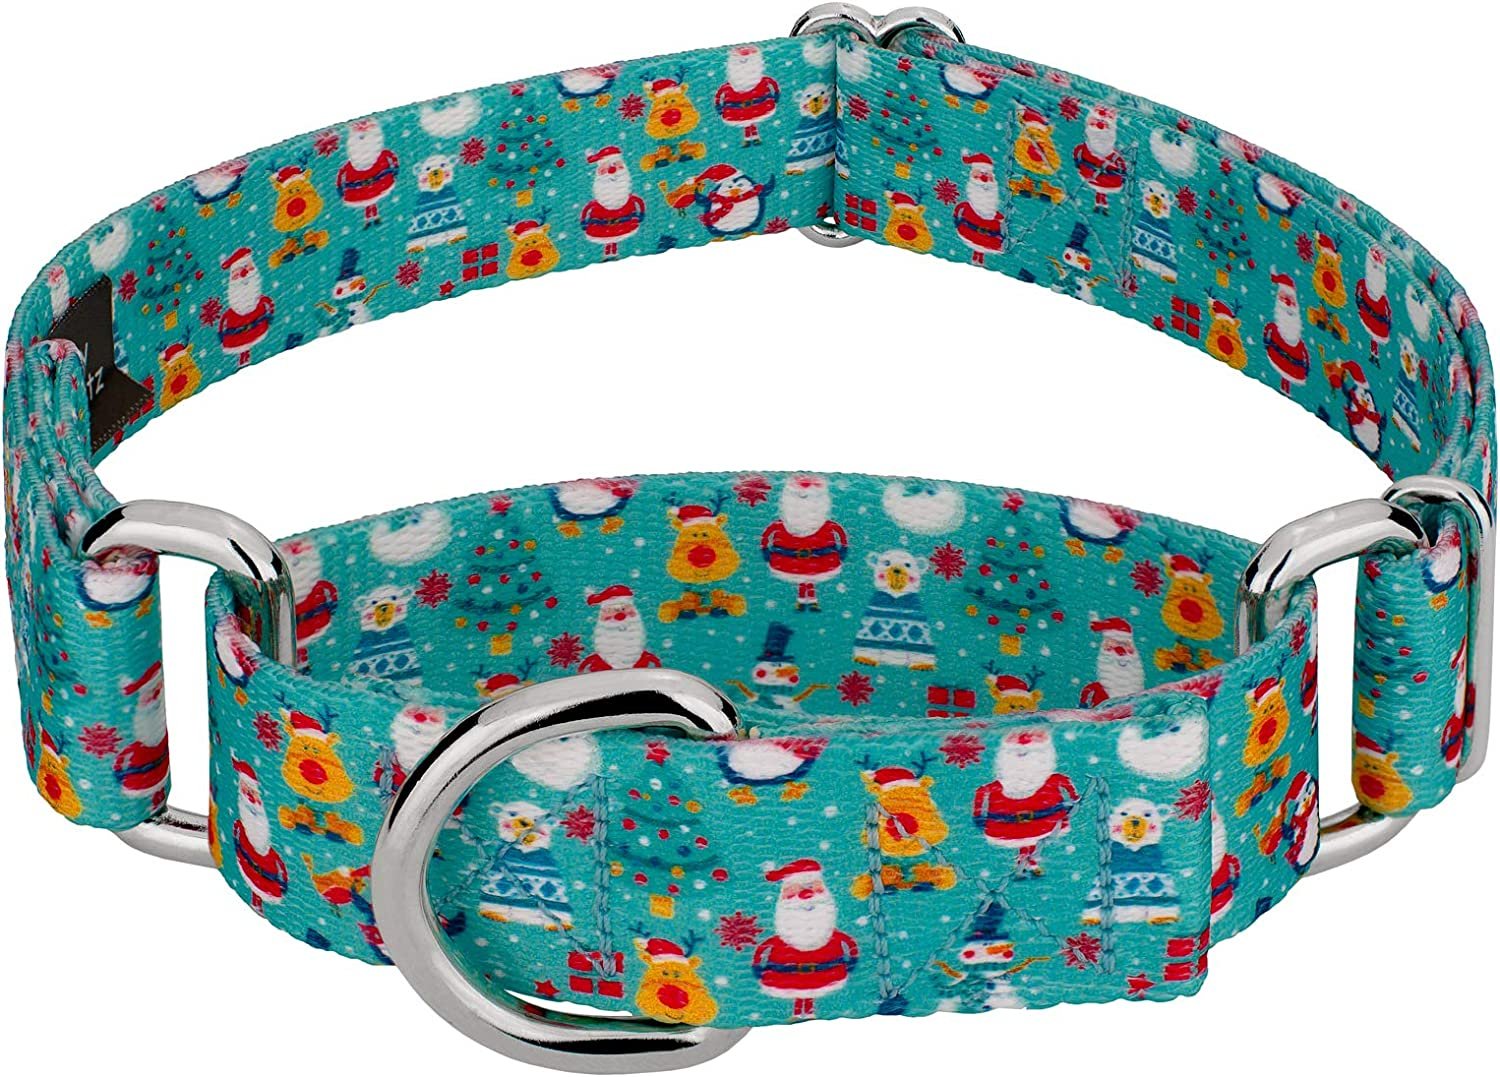 Max Austin Mall 49% OFF Country Brook Petz - Martingale Collectio Christmas Collar Dog